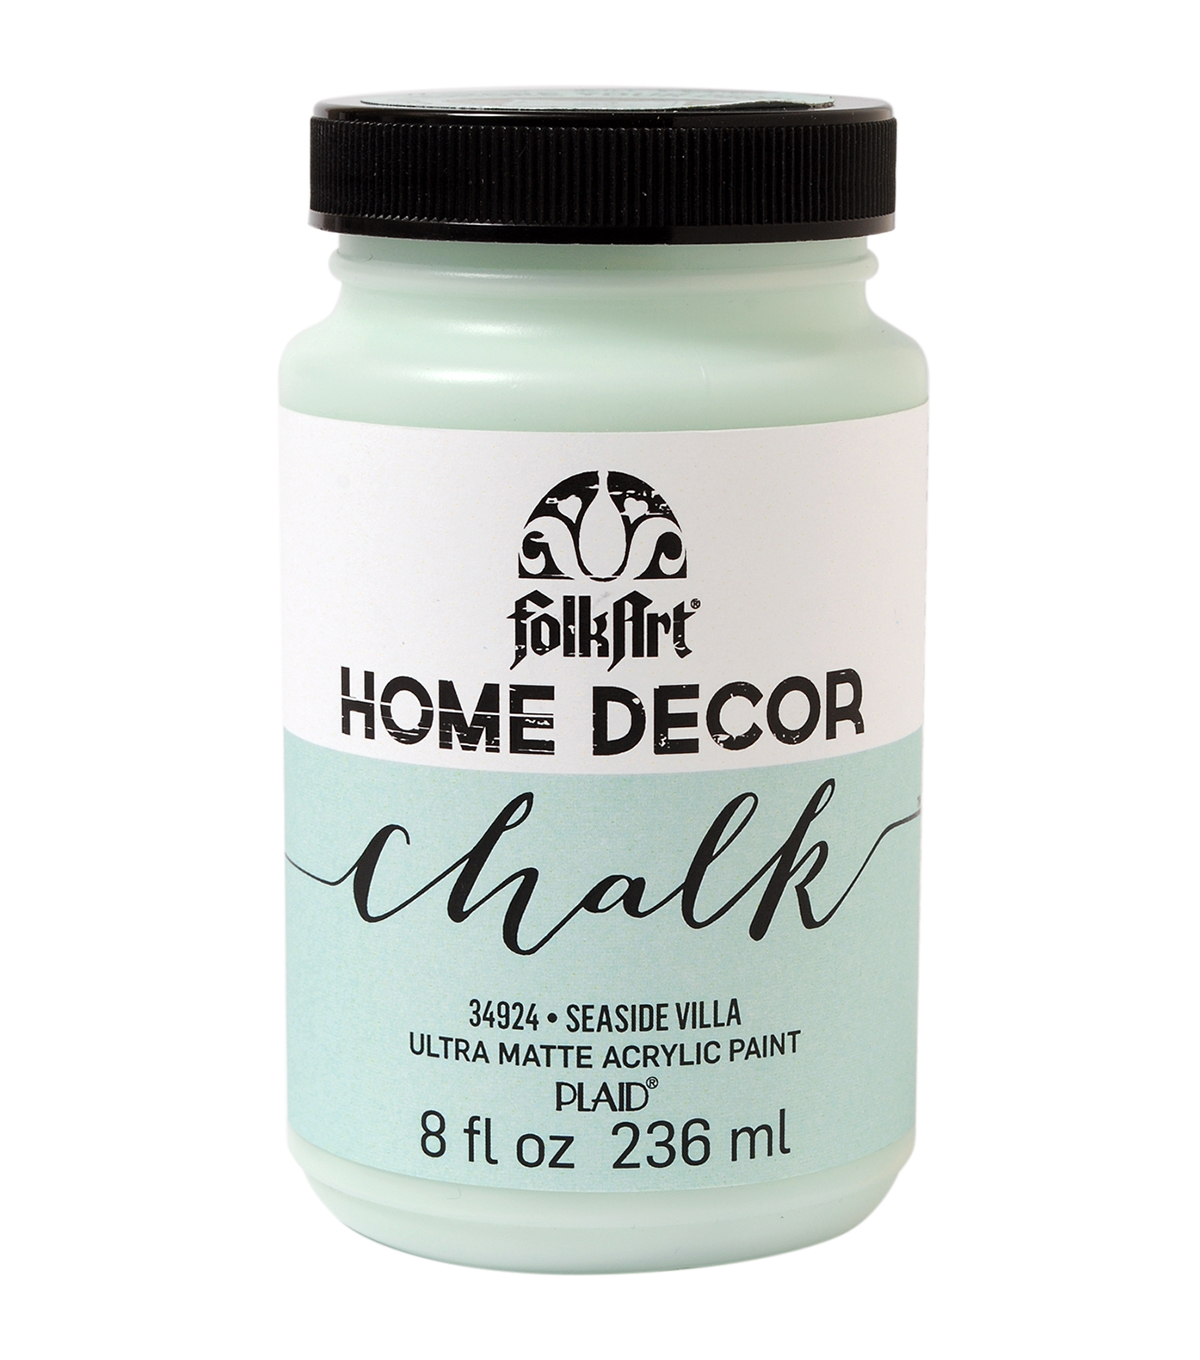 FolkArt Home Decor Chalk   8 Oz., Seaside Villa